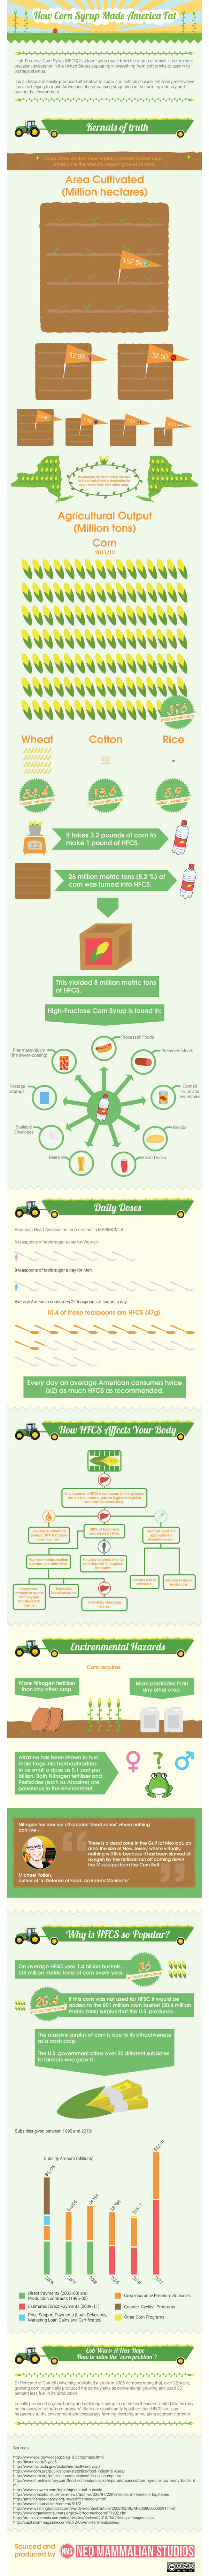 Corn Cyrup Makes You Fat Infographic